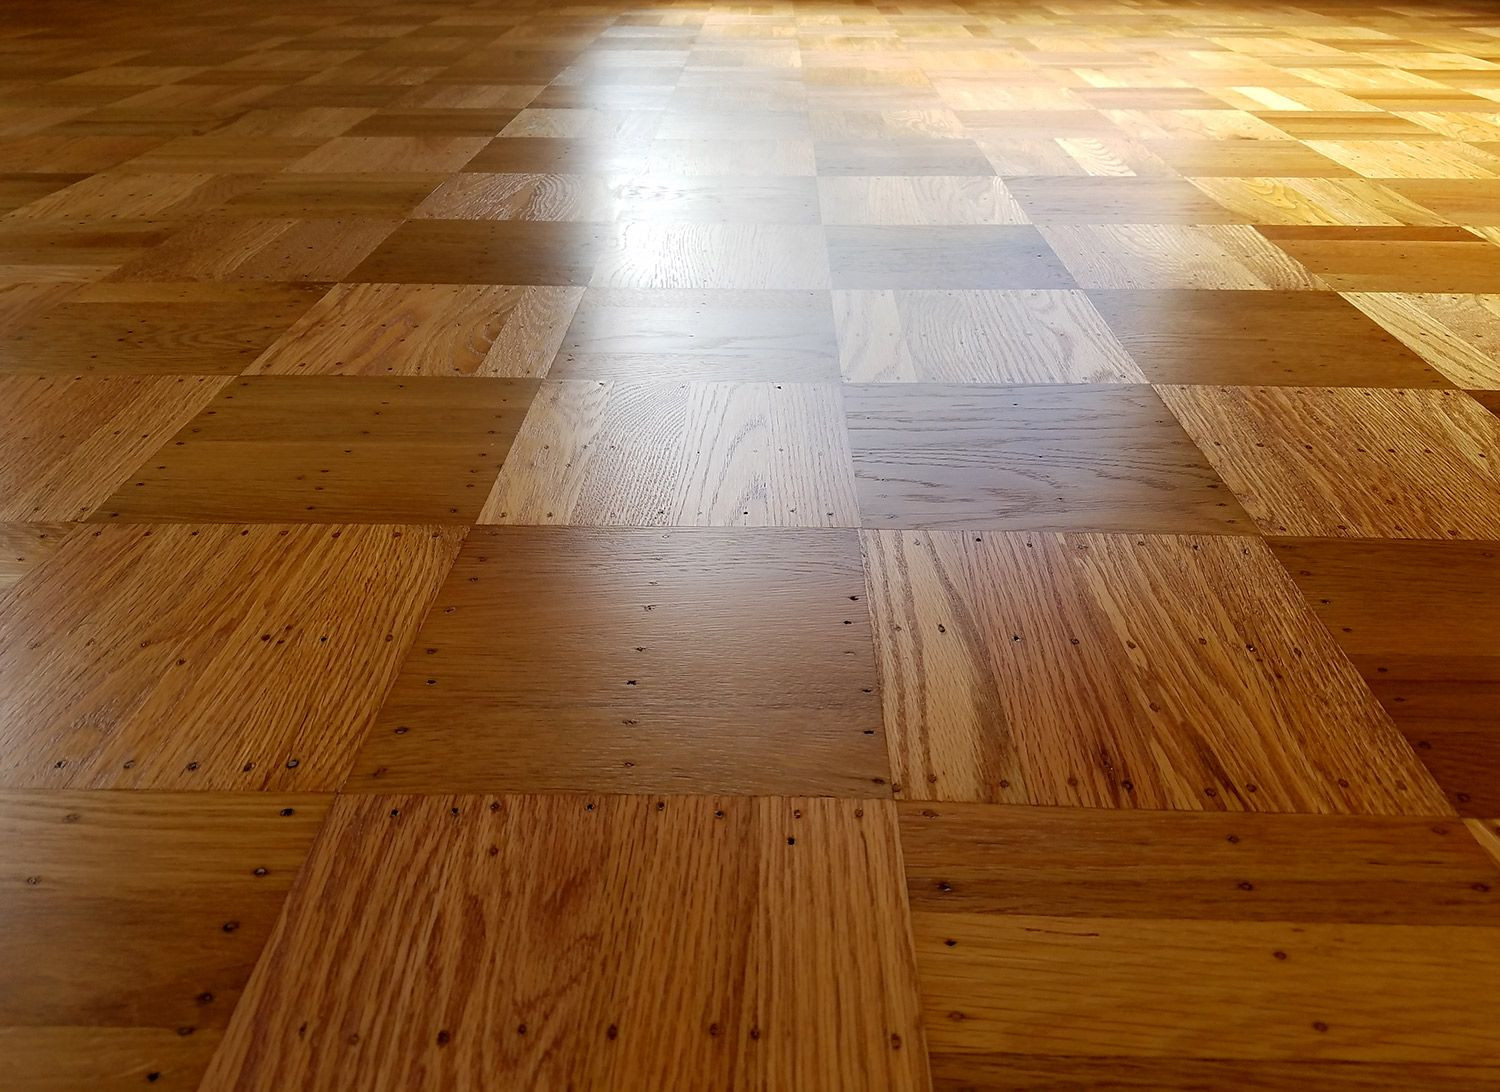 Hardwood Floor Repair Refinishing Of Refinishing Oak Parquet Floors Refinish Pinterest Room Inside Refinishing Oak Parquet Floors